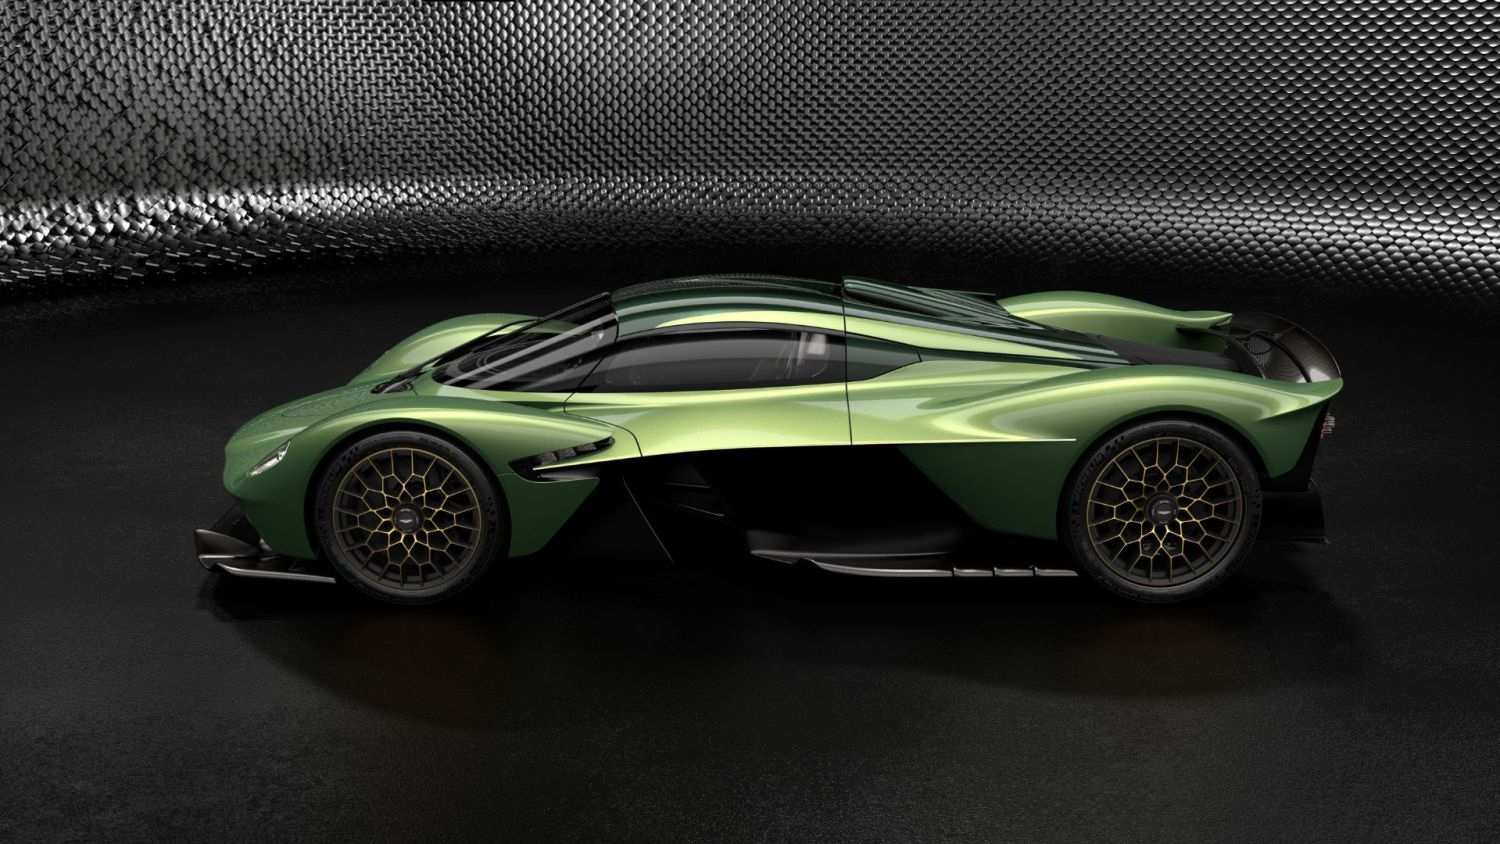 new product d686d 749d7 Aston Martin Valkyrie gets new Track Pack and  Q  accessories